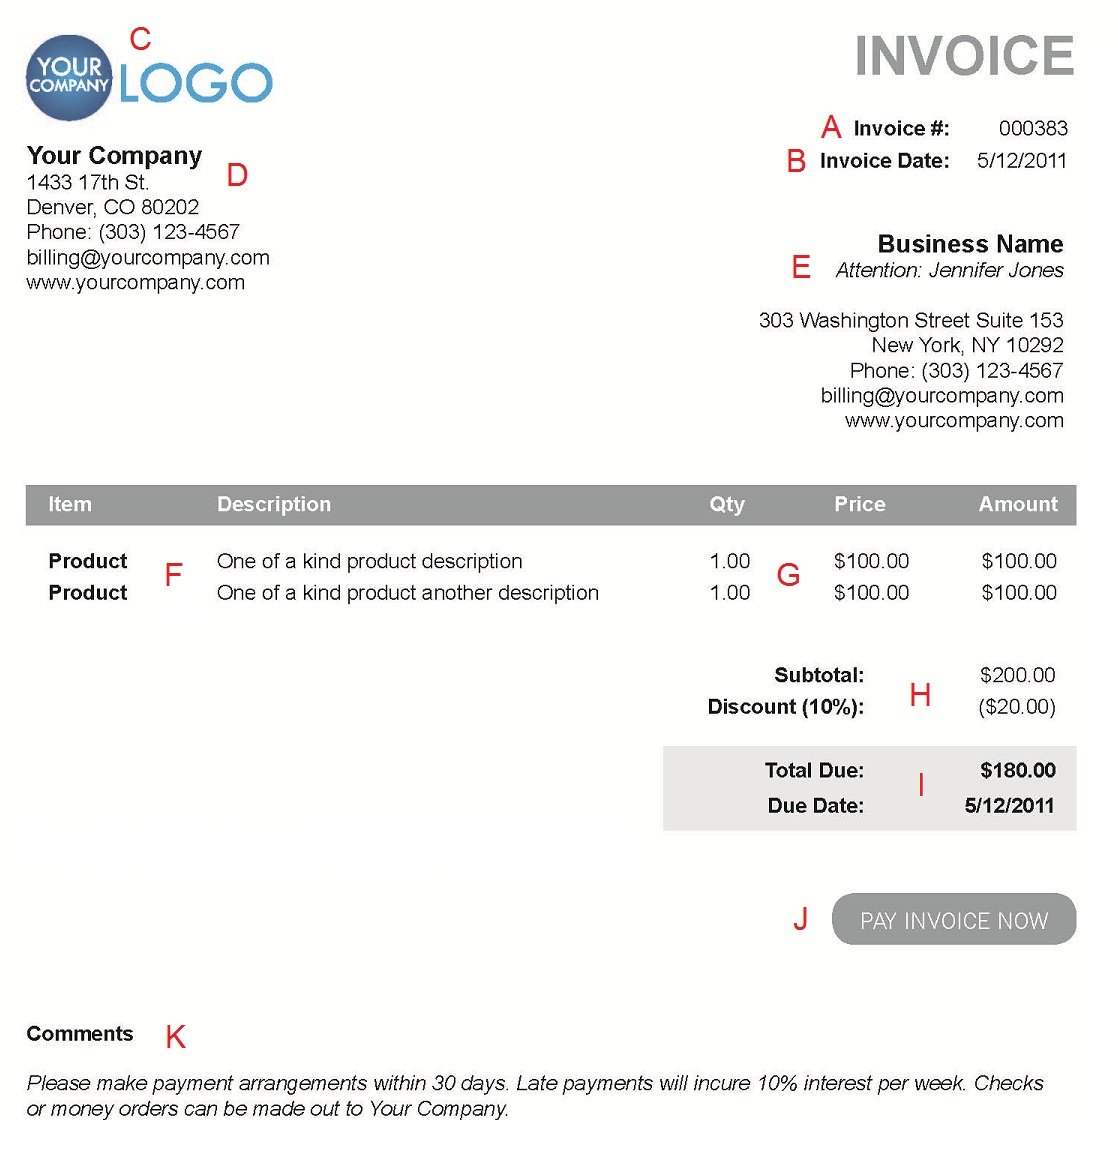 Coolmathgamesus  Ravishing The  Different Sections Of An Electronic Payment Invoice With Great A  With Extraordinary Prius Invoice Price Also Service Invoice Template Free Word In Addition How To Organize Invoices And Invoice Terms And Conditions Sample As Well As Web Based Invoice Software Additionally Dfas My Invoice From Paysimplecom With Coolmathgamesus  Great The  Different Sections Of An Electronic Payment Invoice With Extraordinary A  And Ravishing Prius Invoice Price Also Service Invoice Template Free Word In Addition How To Organize Invoices From Paysimplecom